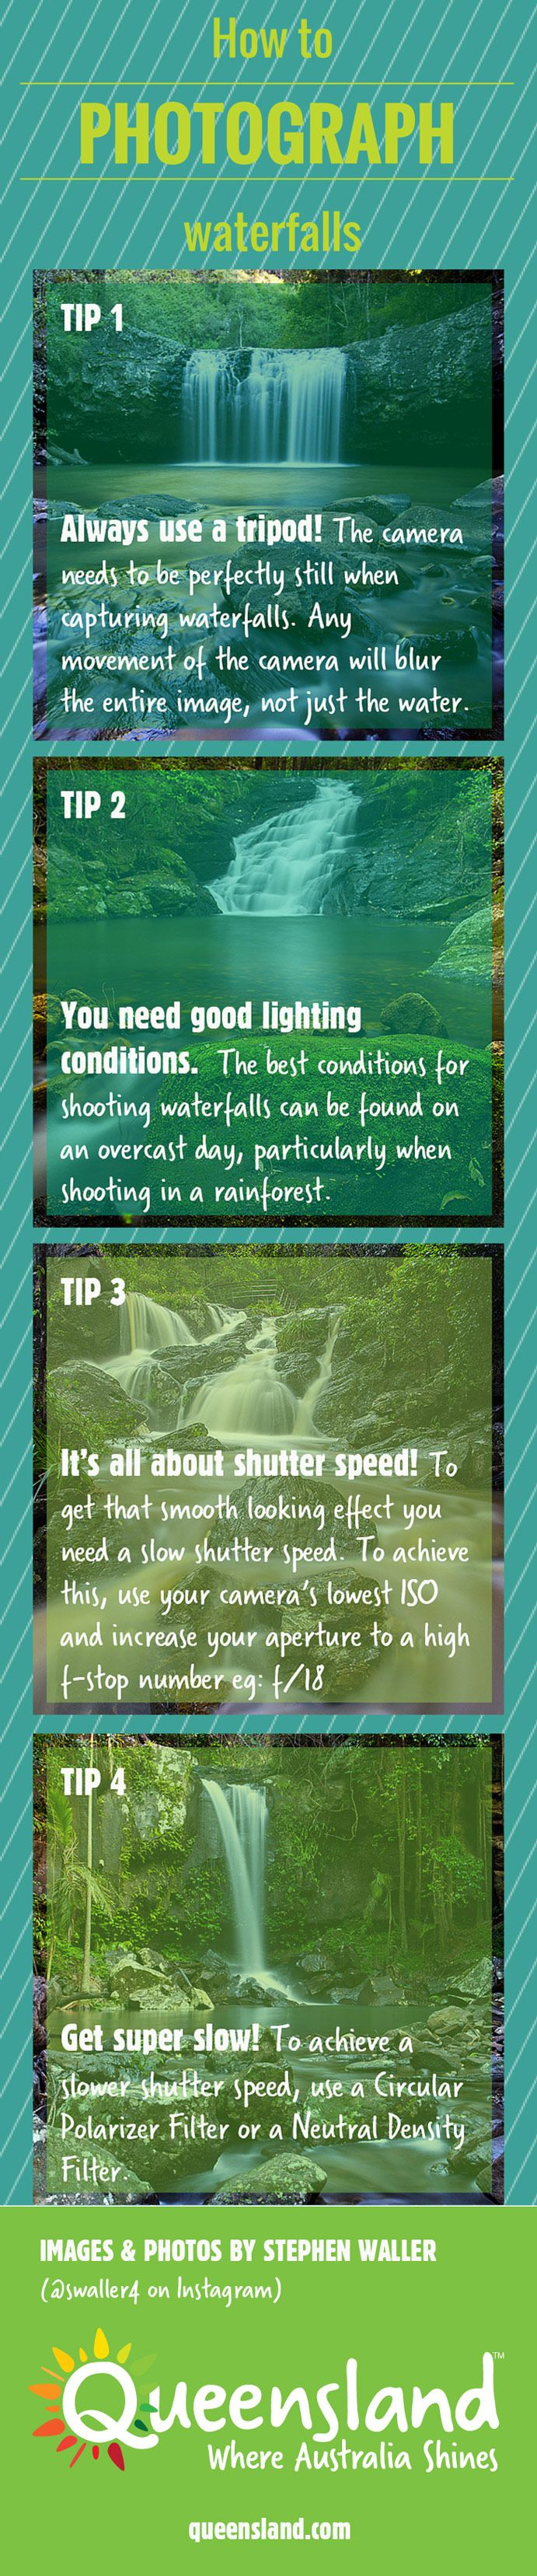 How to photograph waterfalls INFOGRAPHIC